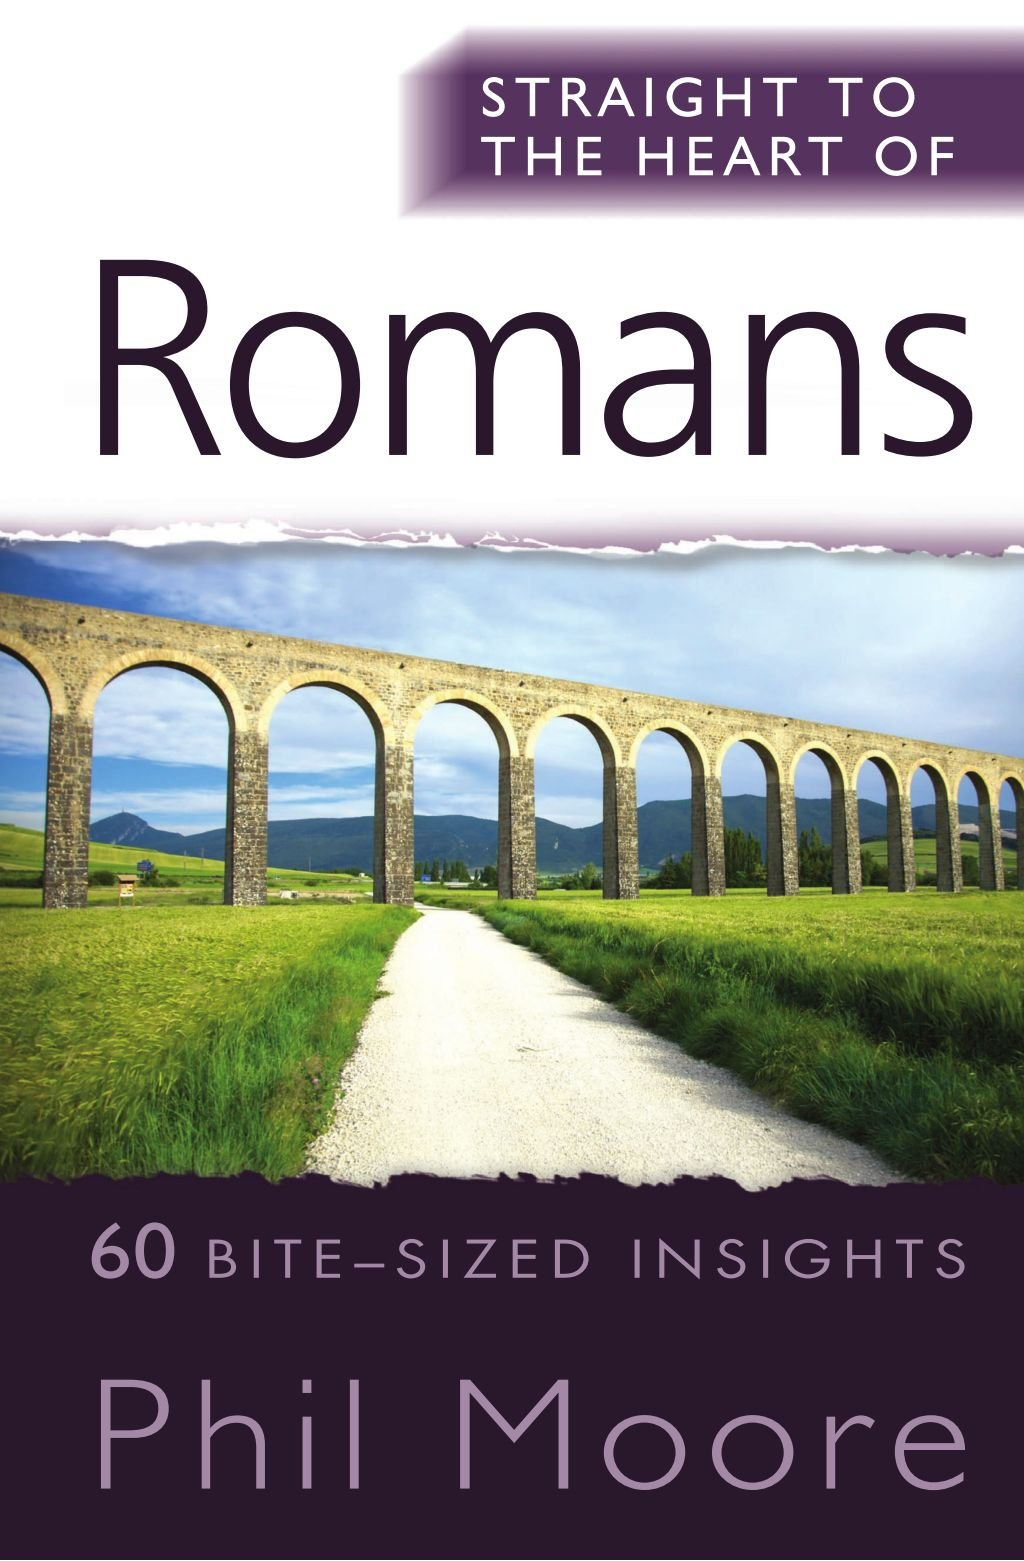 Straight to the Heart of Romans: 60 Bite-Sized Insights (Straight to the Heart Commentary) PDF